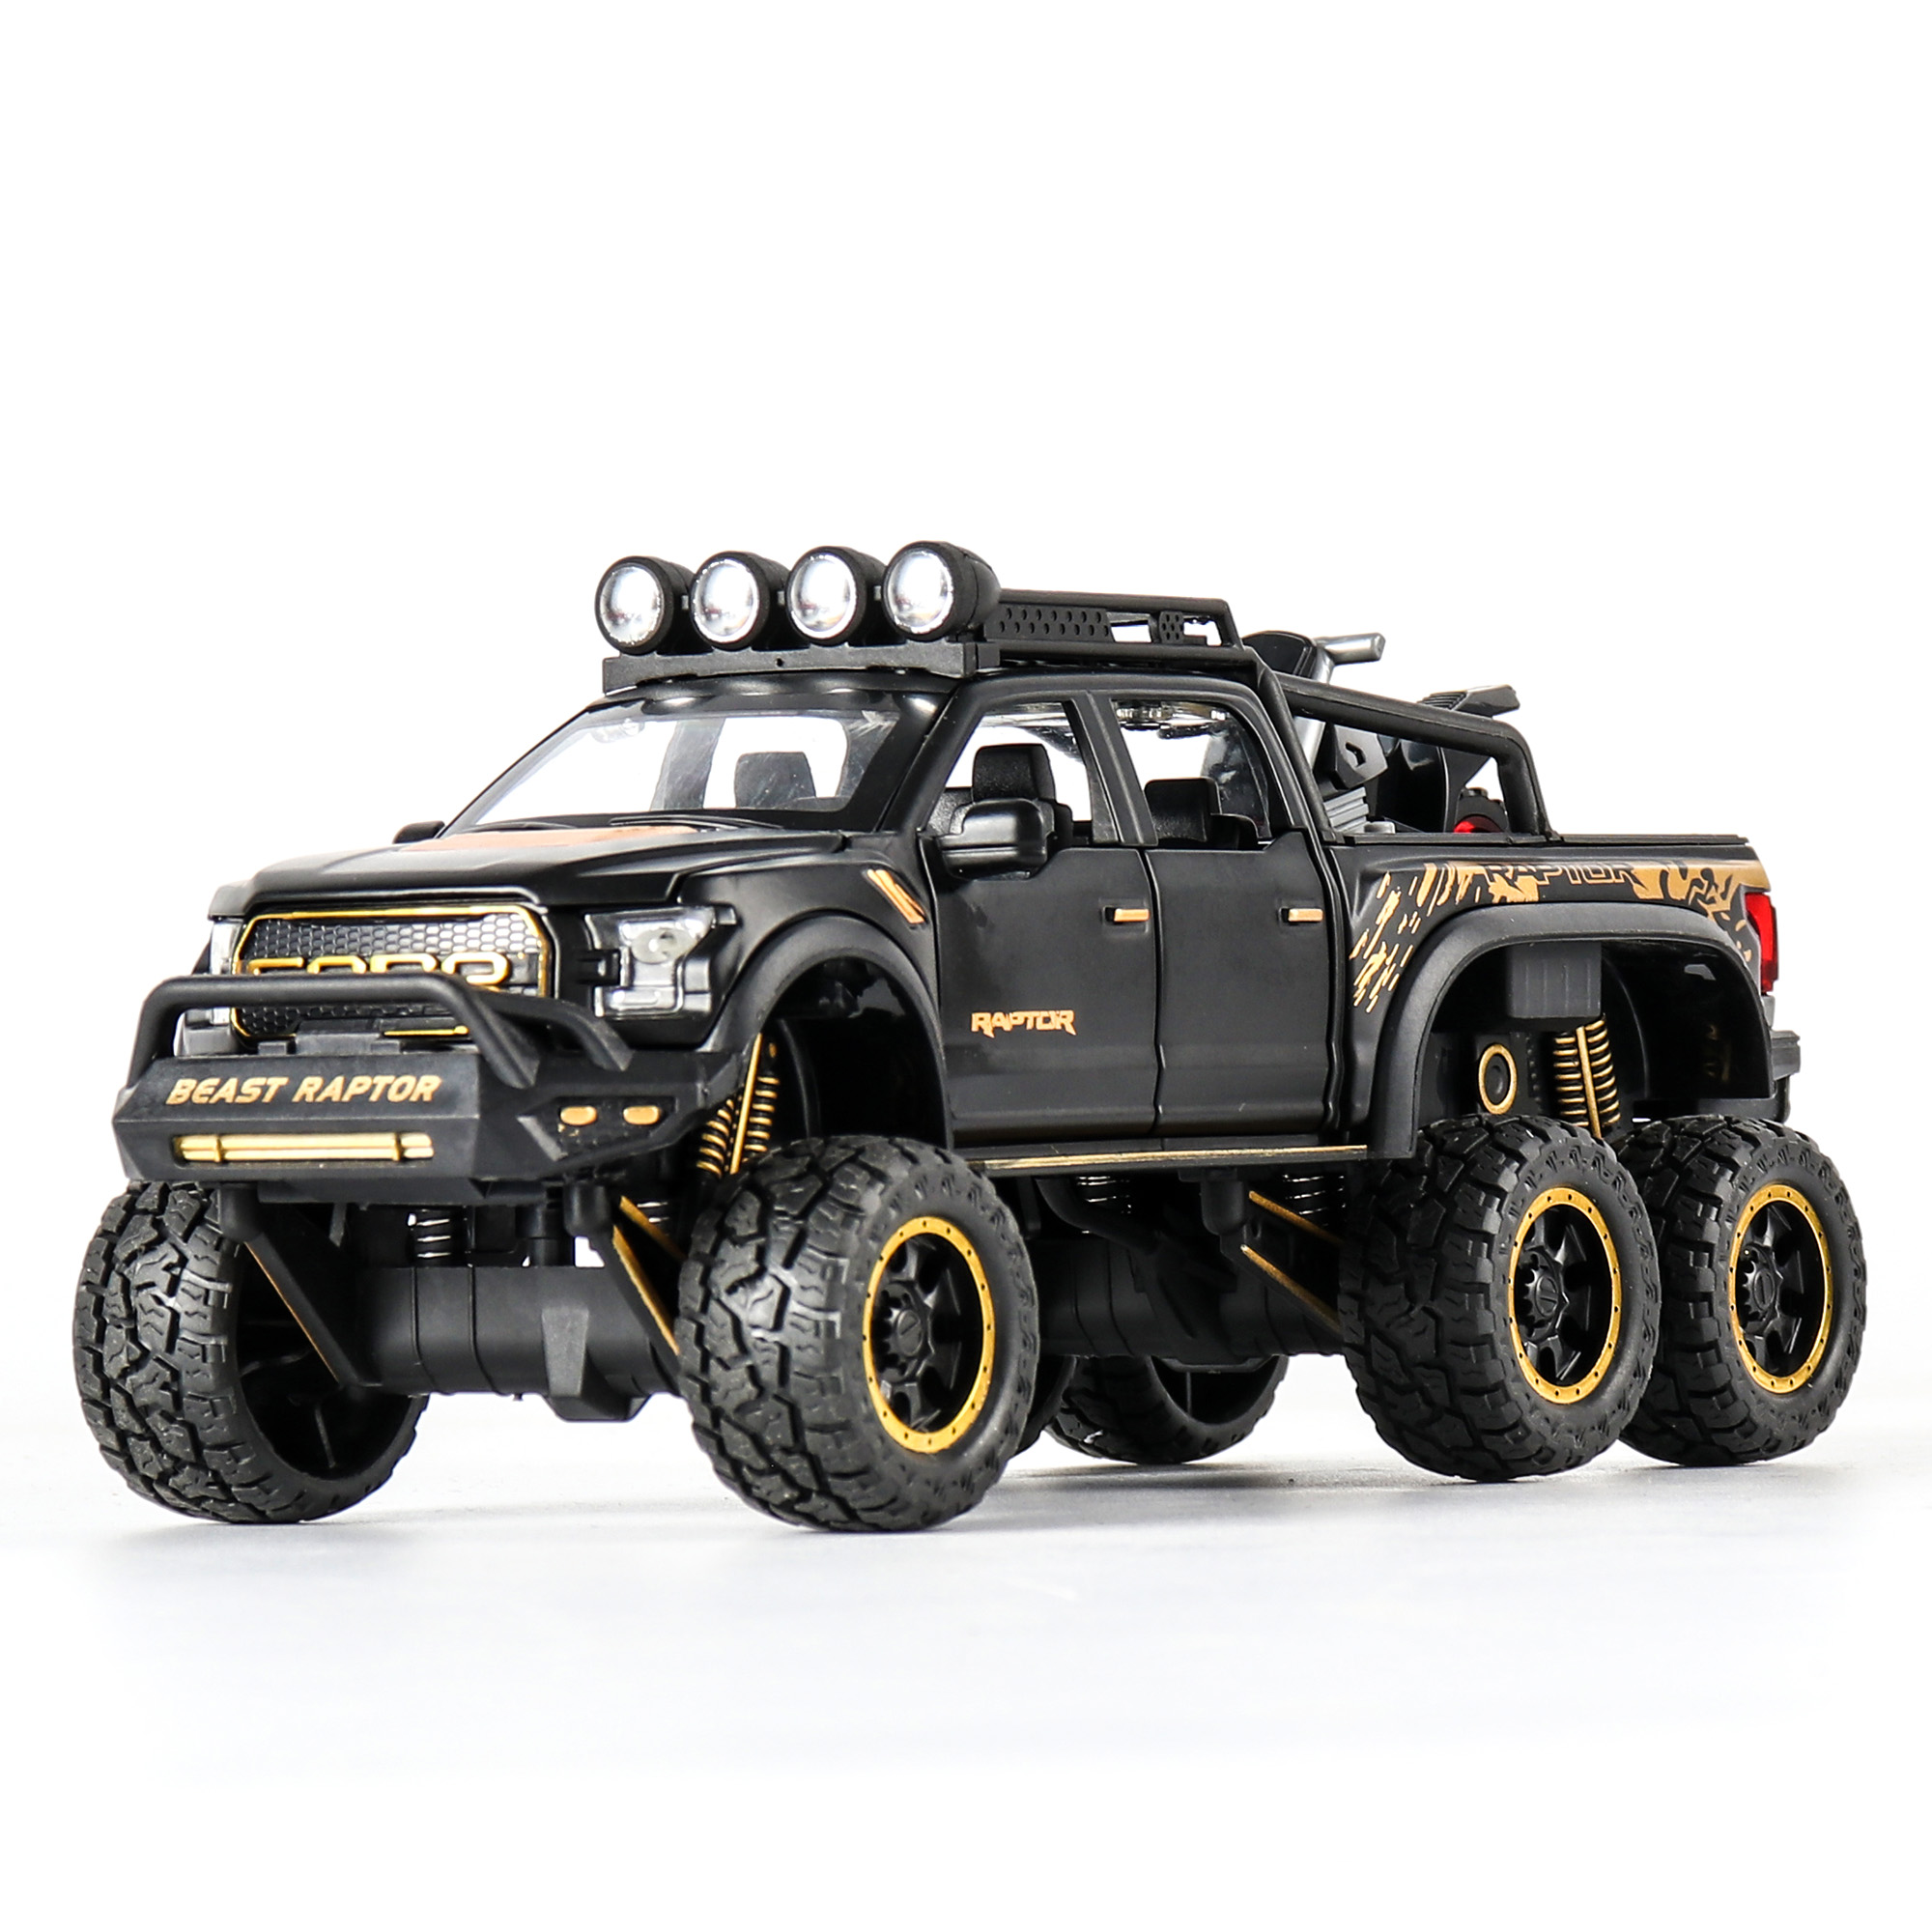 1:28 Diecast SUV FORD RAPTOR Metal Model Car Toy Wheels Alloy VehicleSound And Light Pull Back Car Boy Kid Toys Christmas Gift